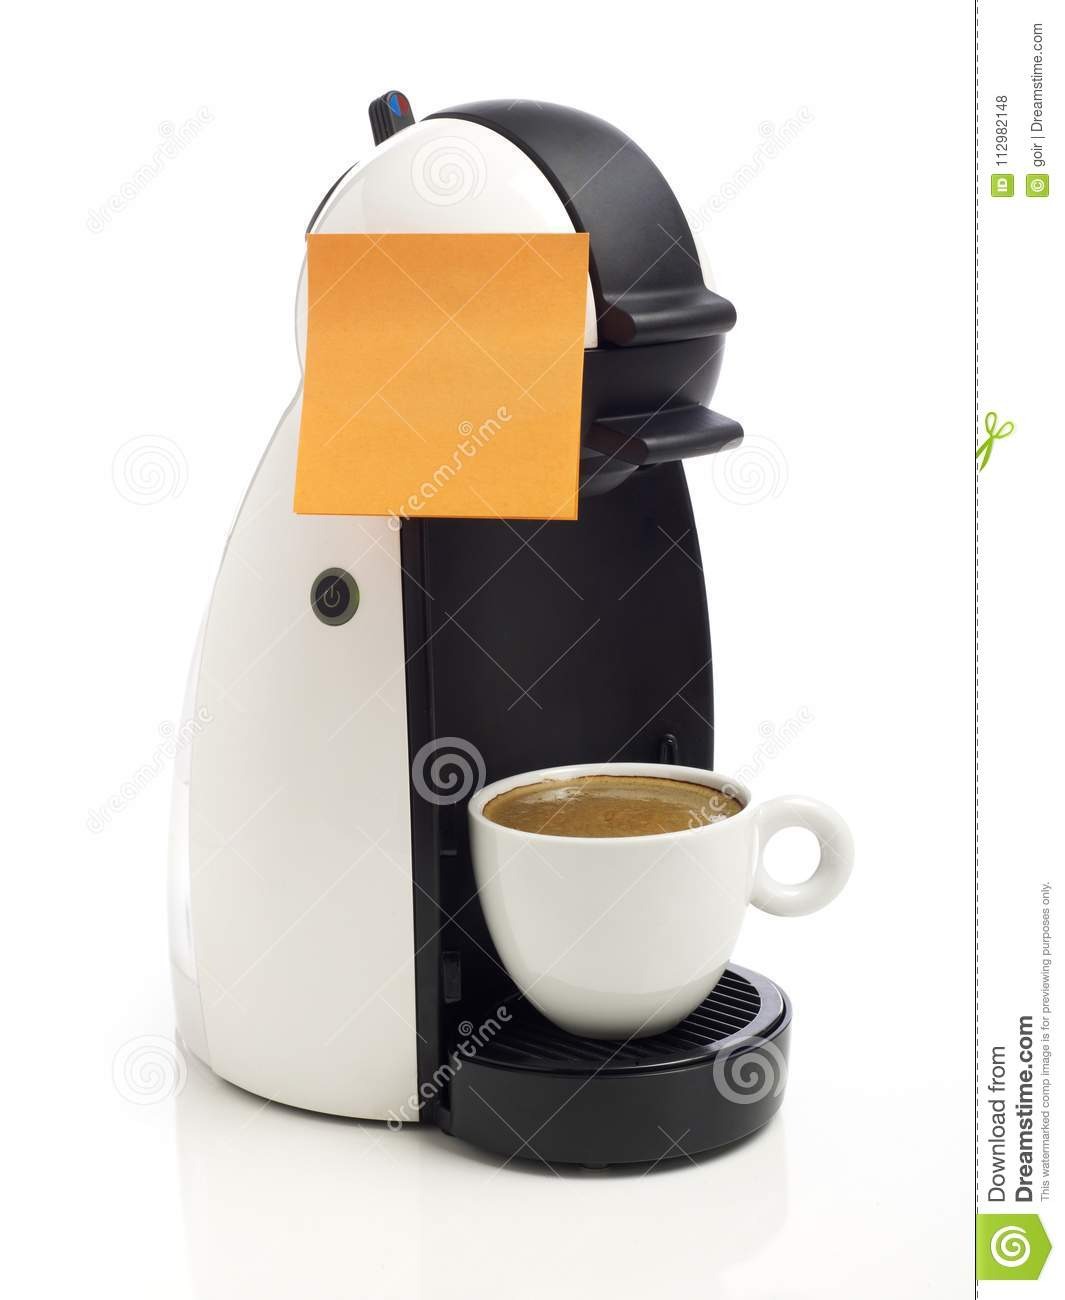 Adhesive note on coffee maker